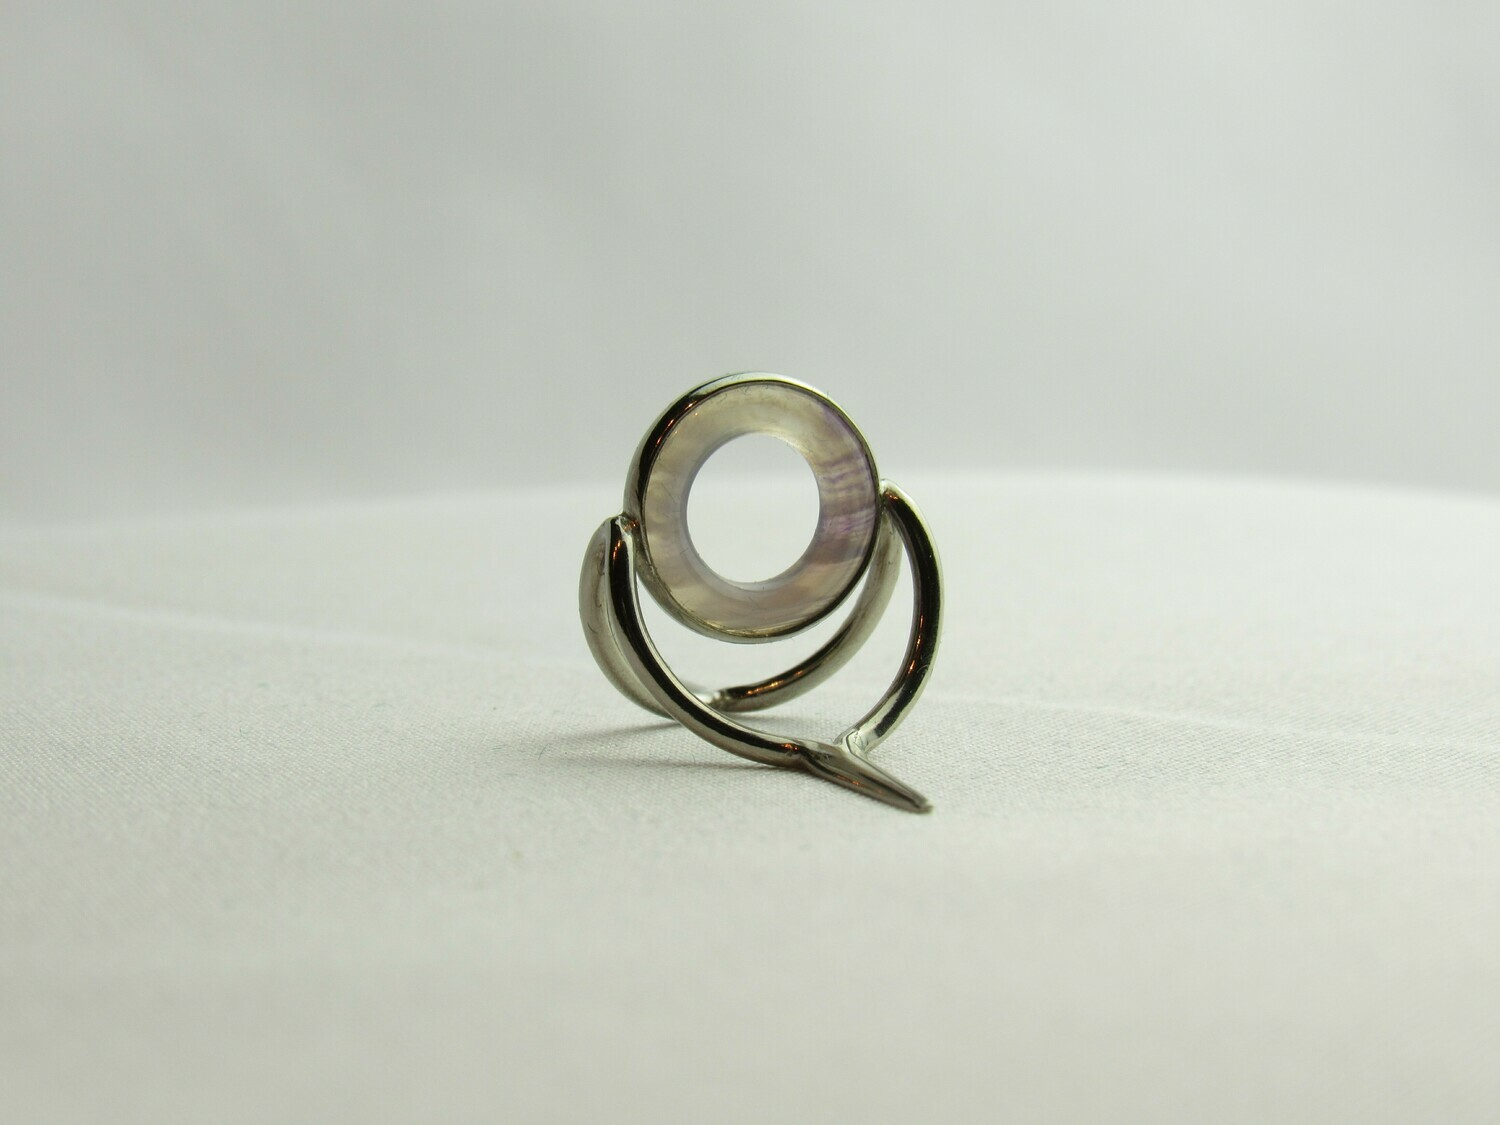 Agate Perfect Stripping Guide Ring 10mm purple clear / banded